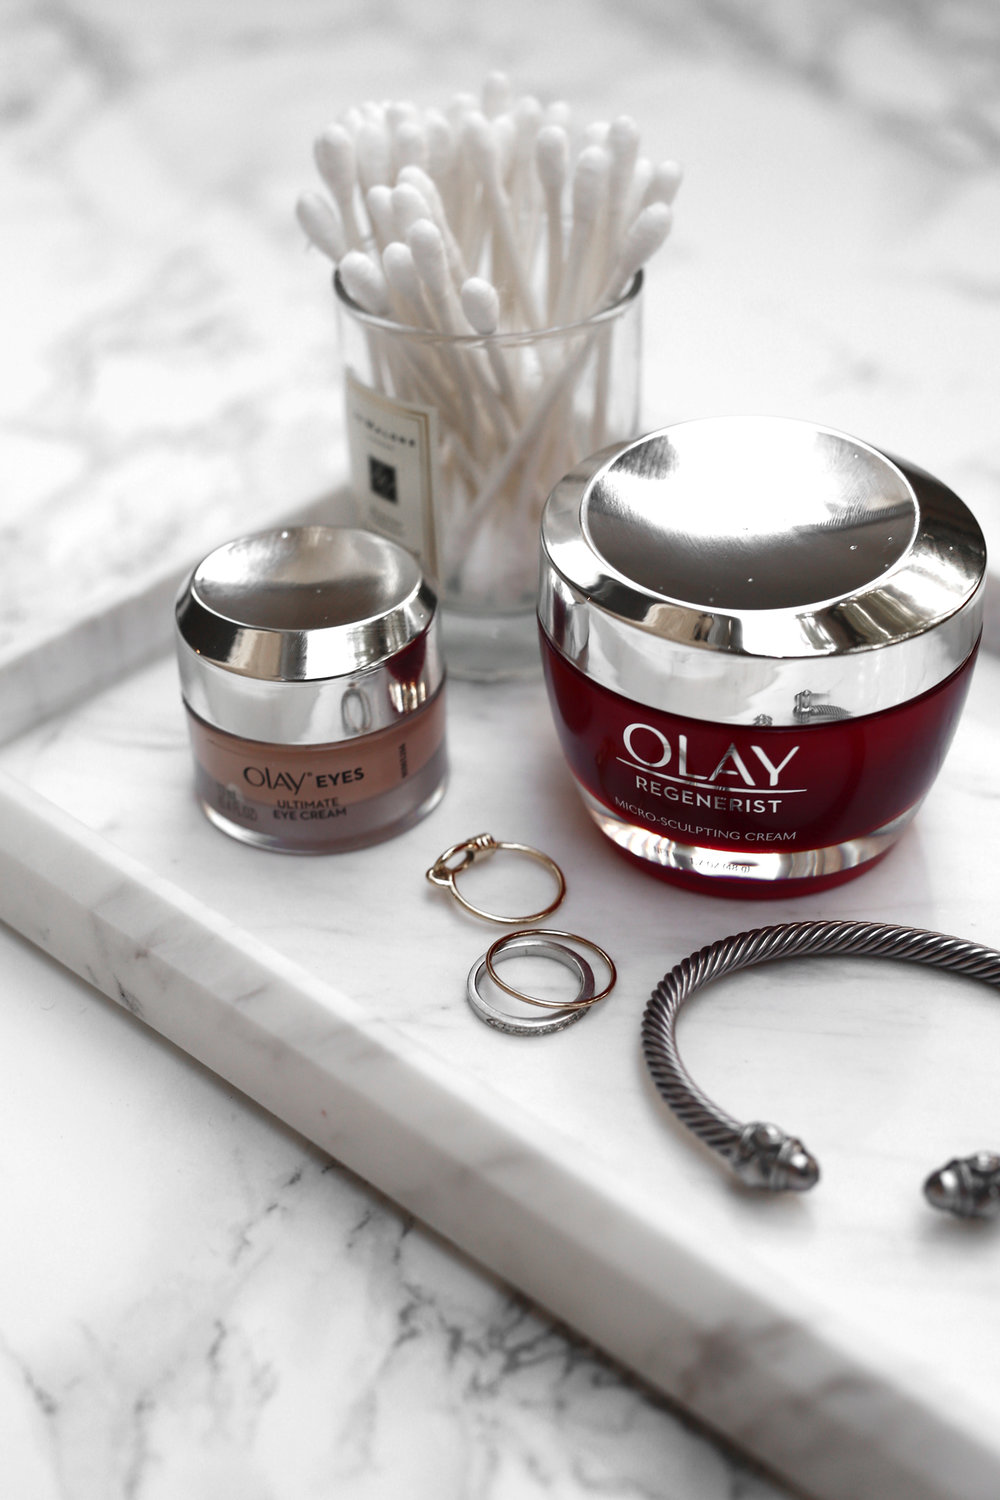 Olay Regenerist Micro Sculpting cream review -Skincare for your thirties and beyond_2731.jpg